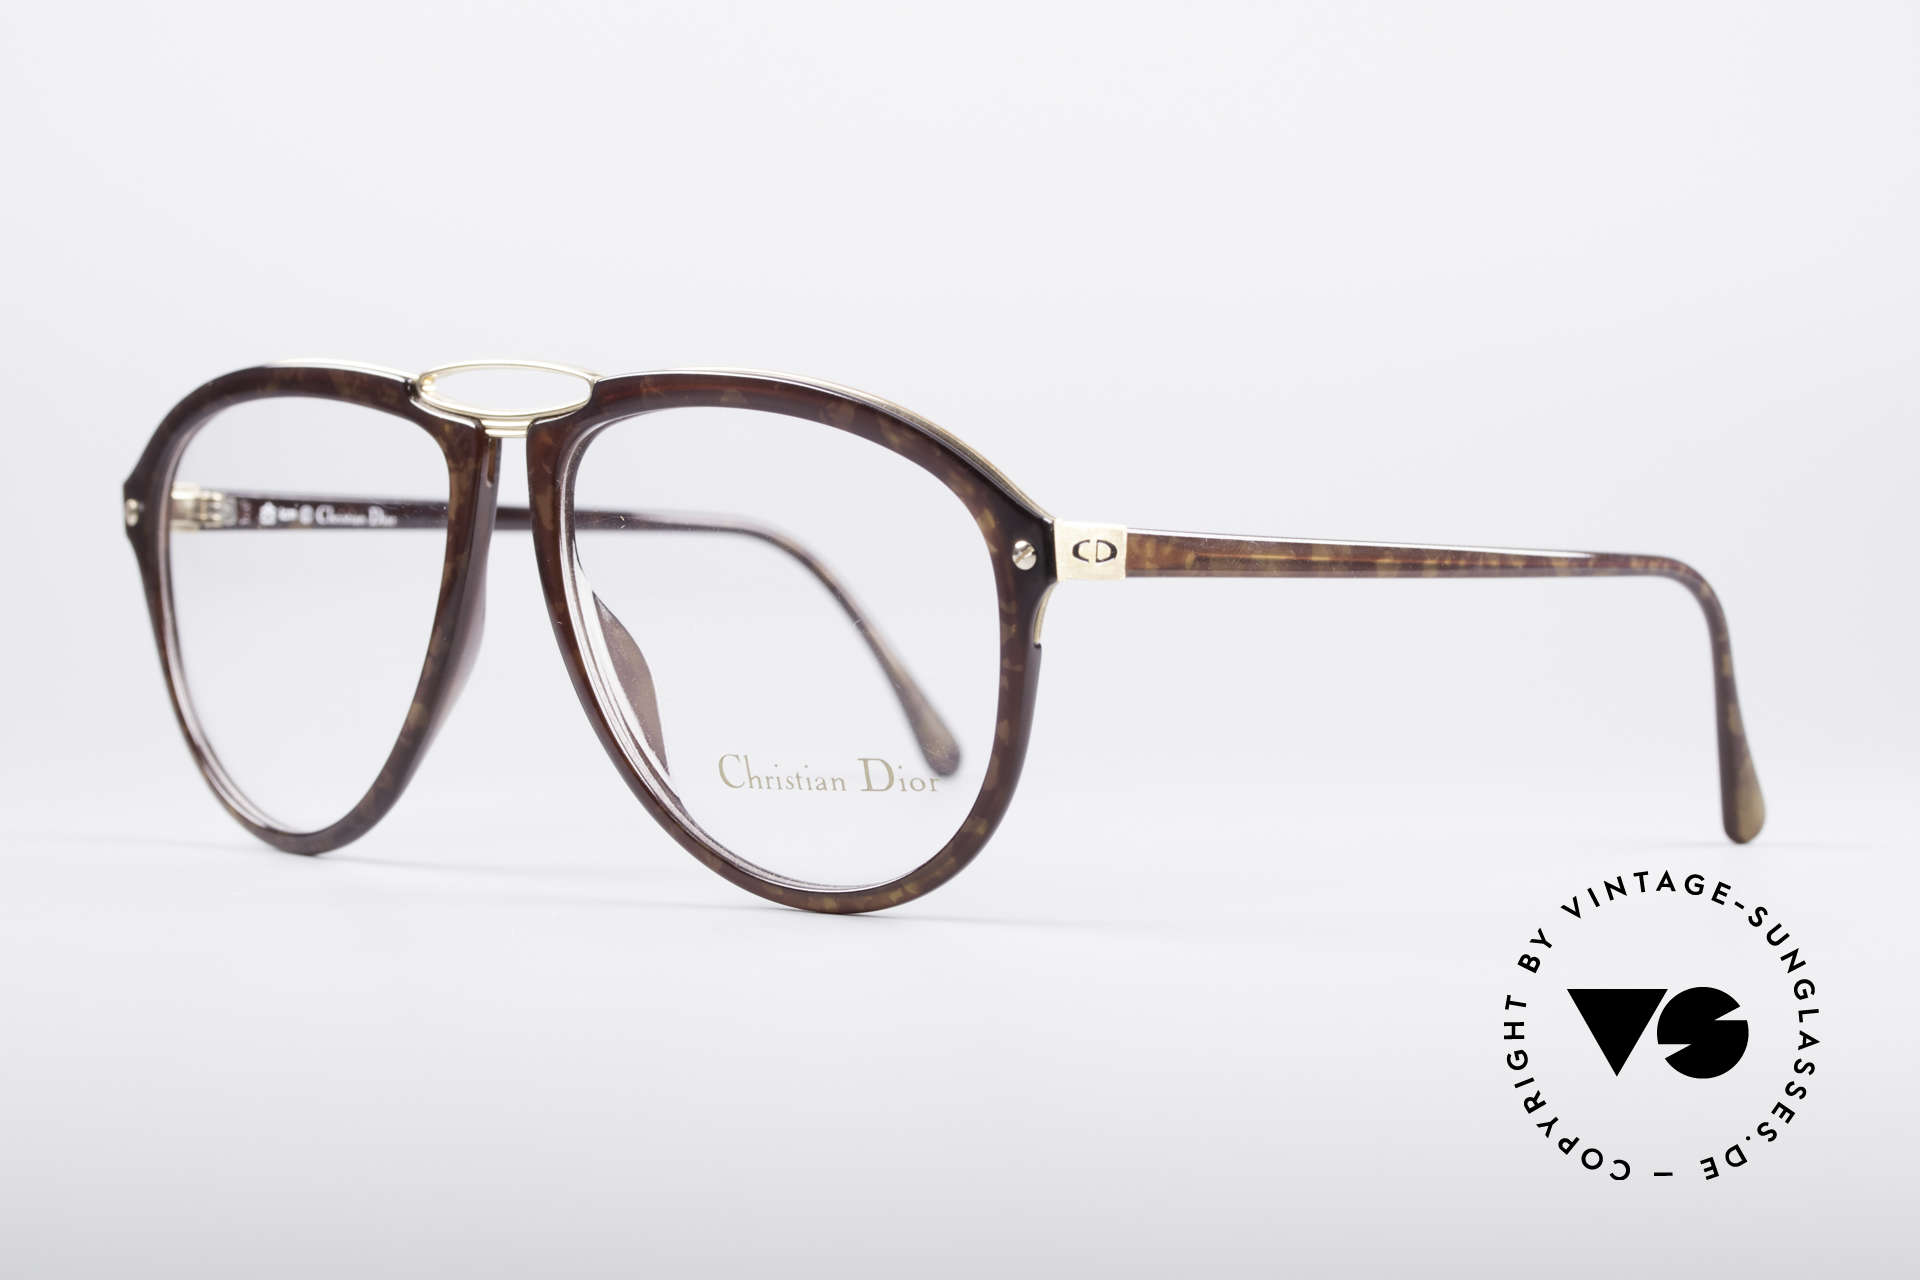 Christian Dior 2523 80's No Retro Glasses, flexible synthetic (OPTYL) frame with a metal inlay, Made for Men